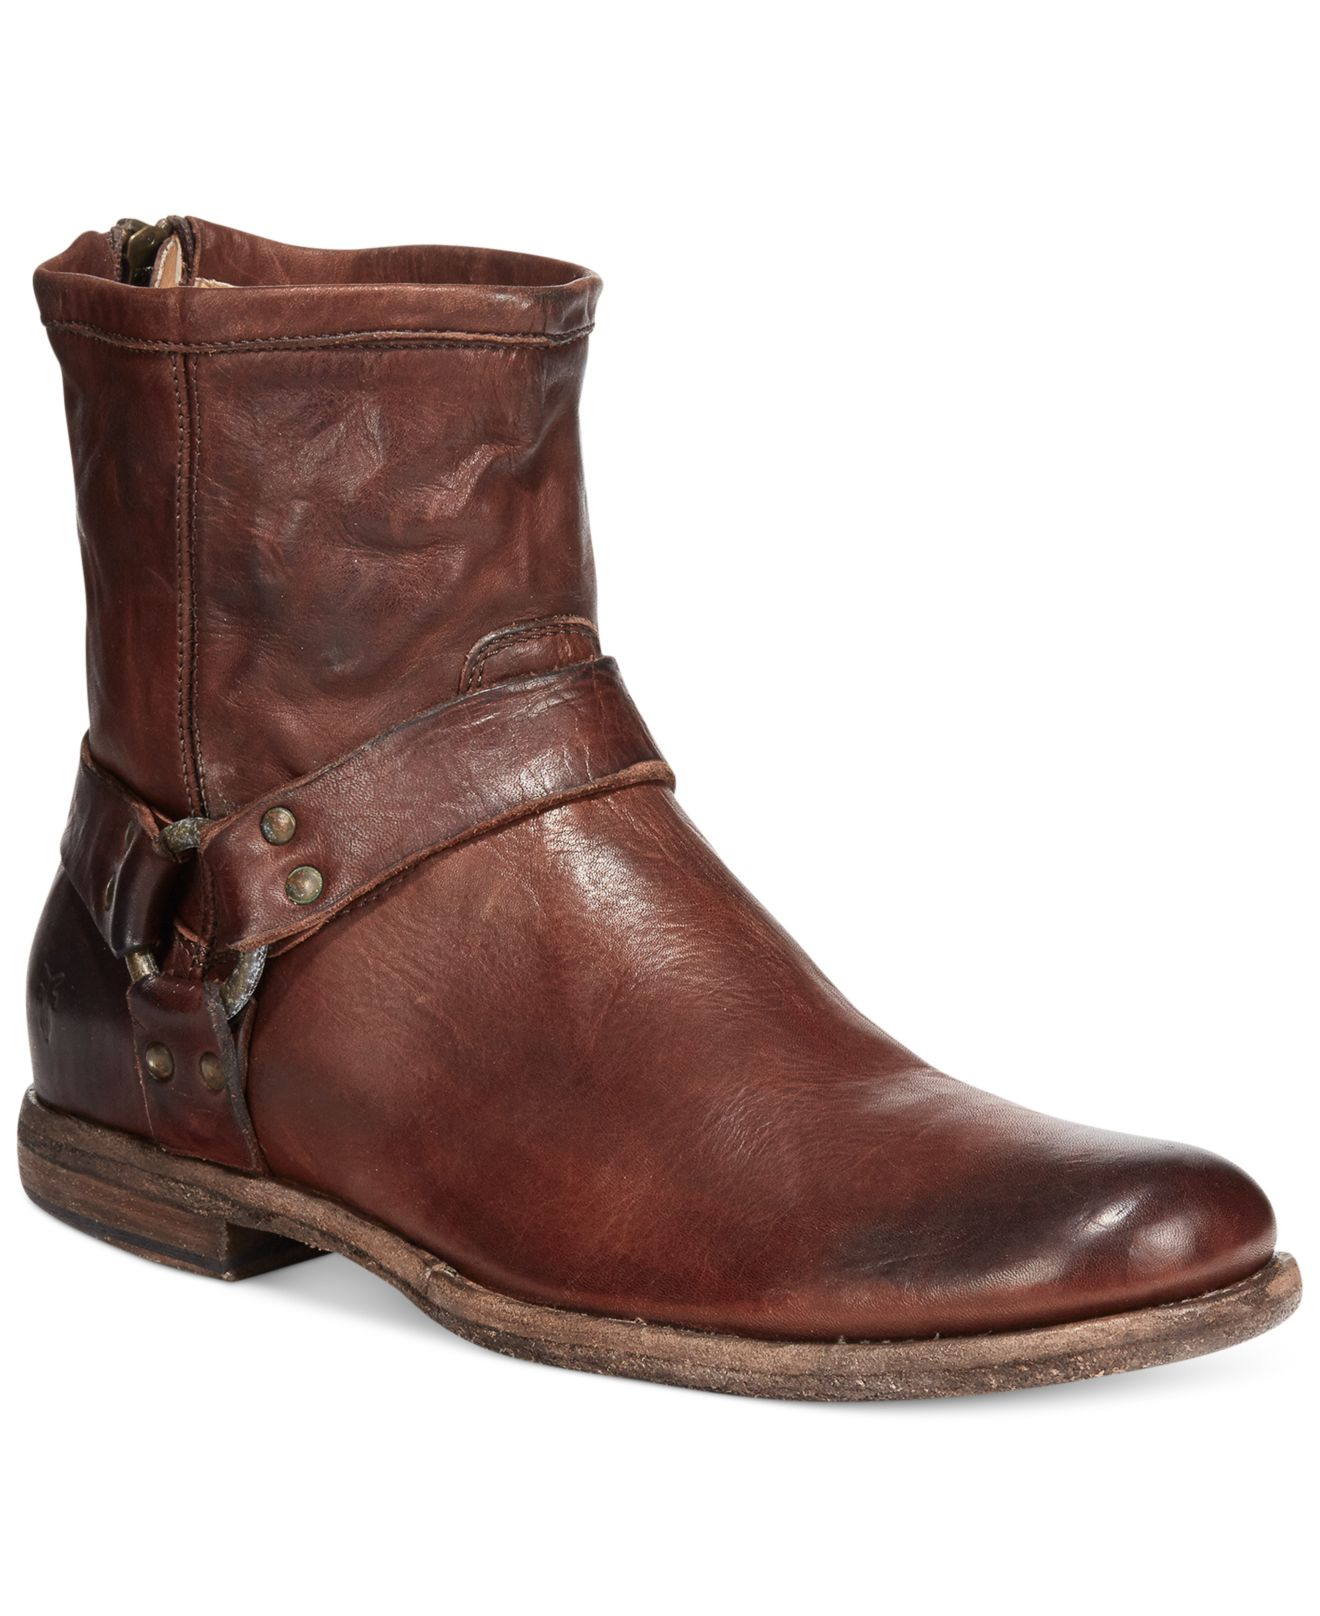 frye phillip harness boots in brown for lyst